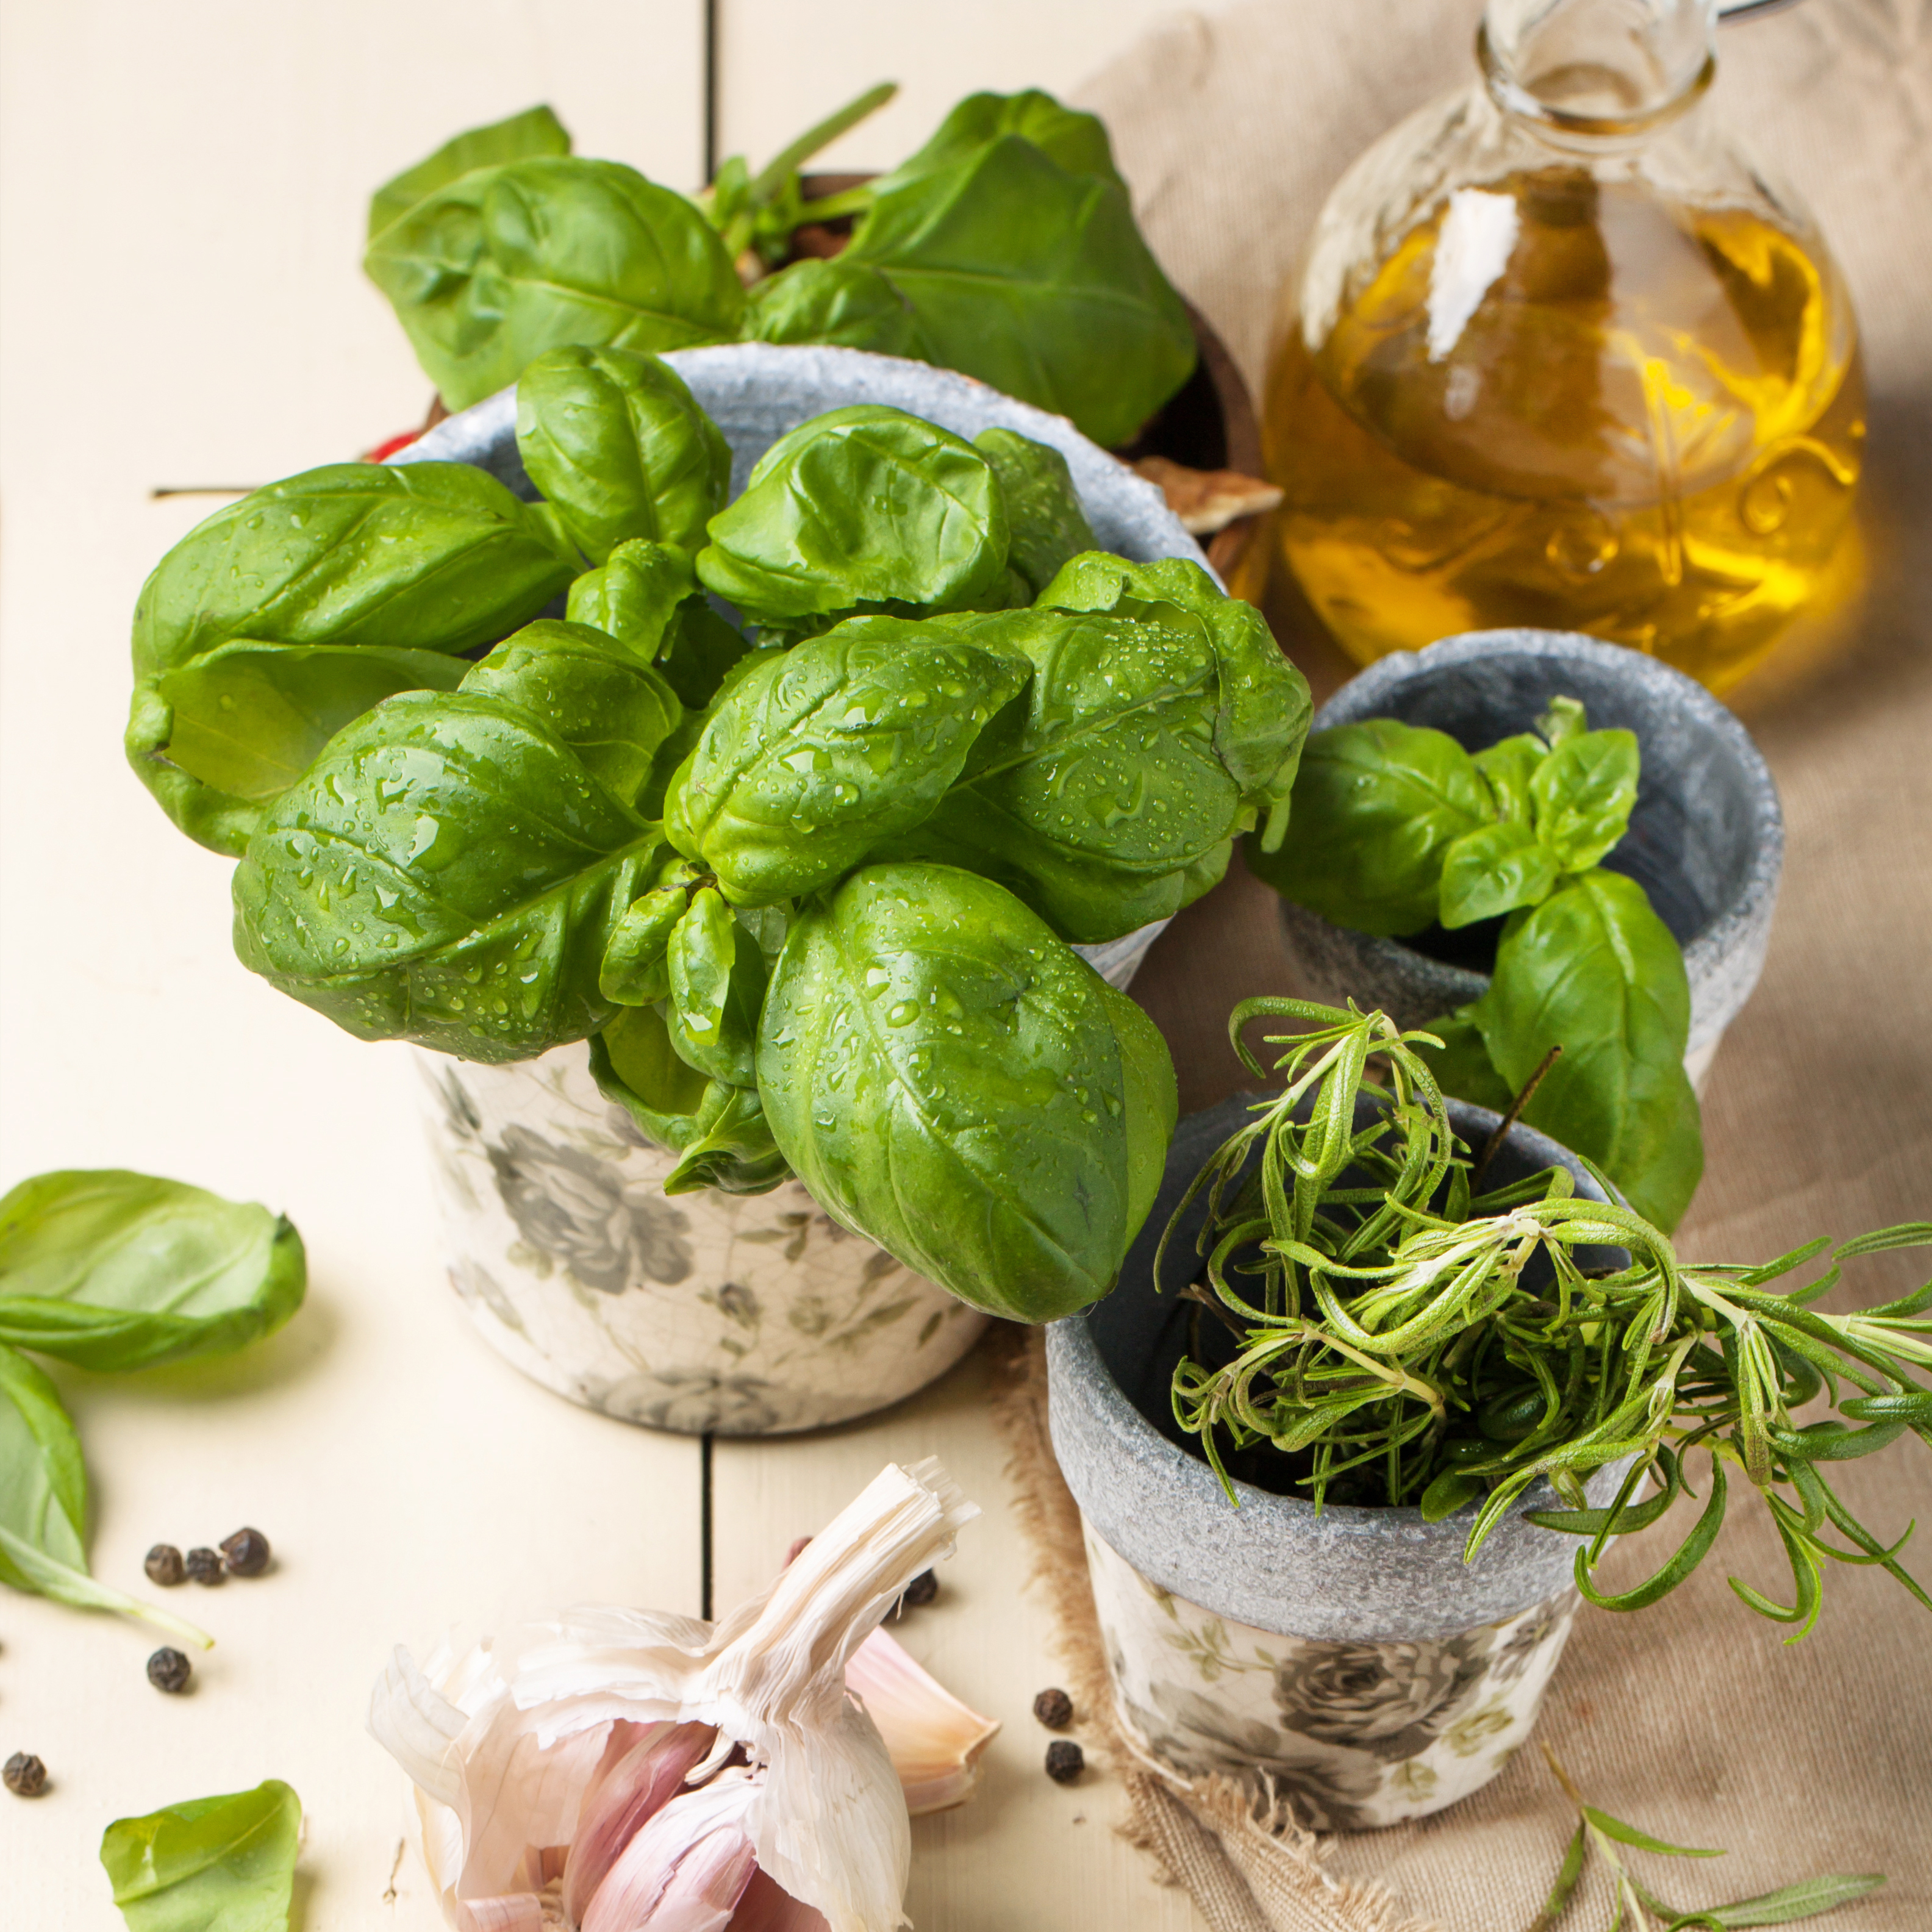 Basil, nuts and olive oil